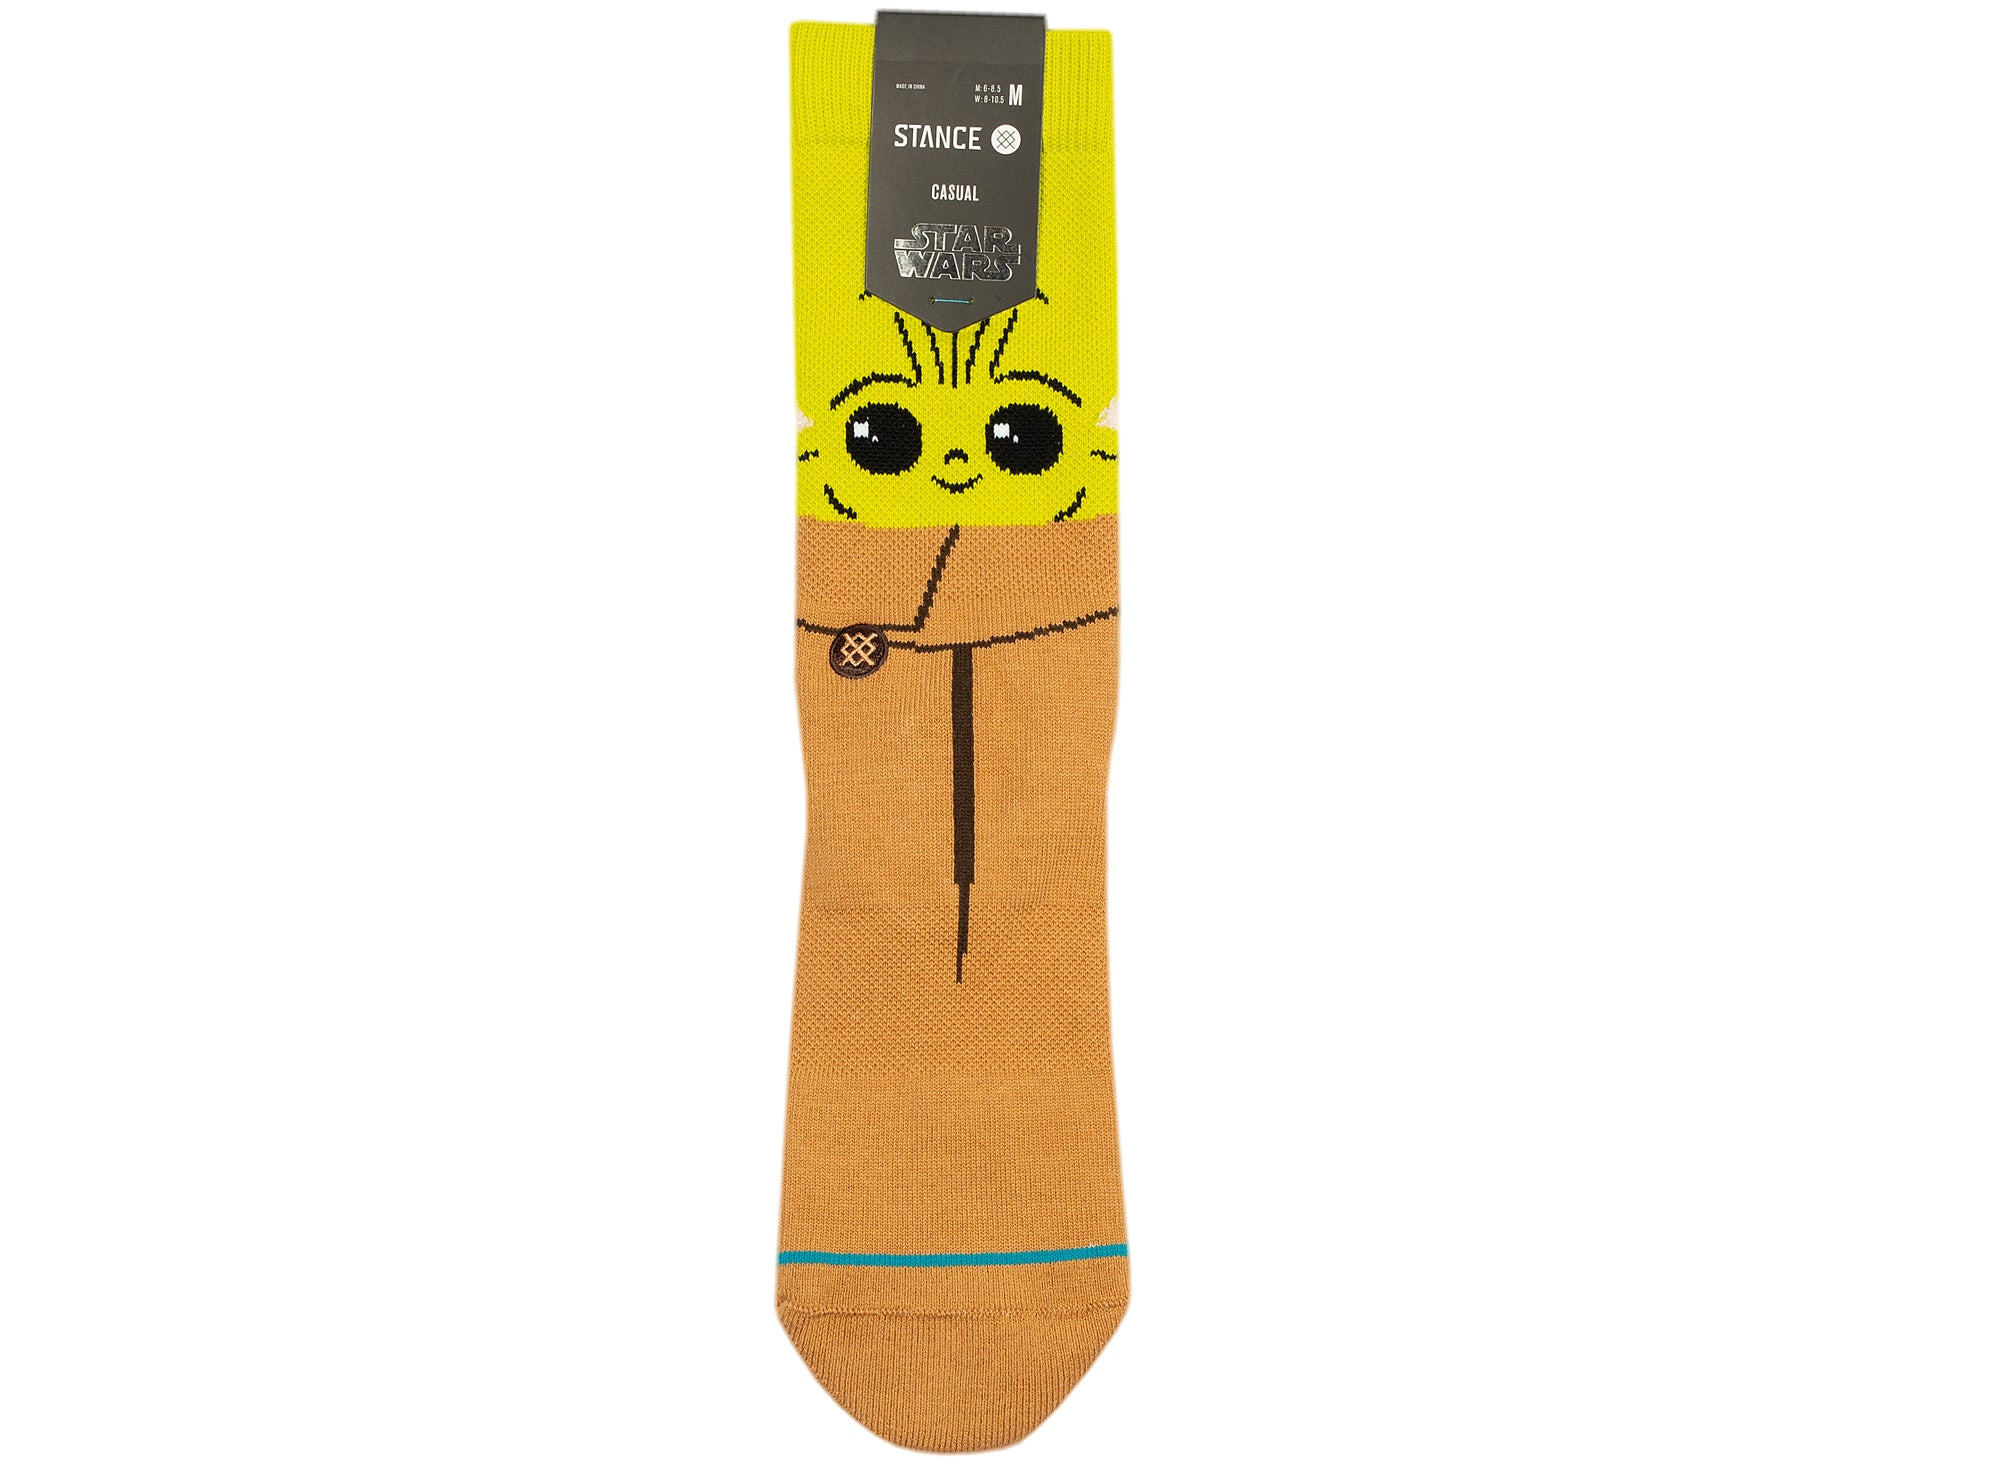 Stance The Bounty Socks xld